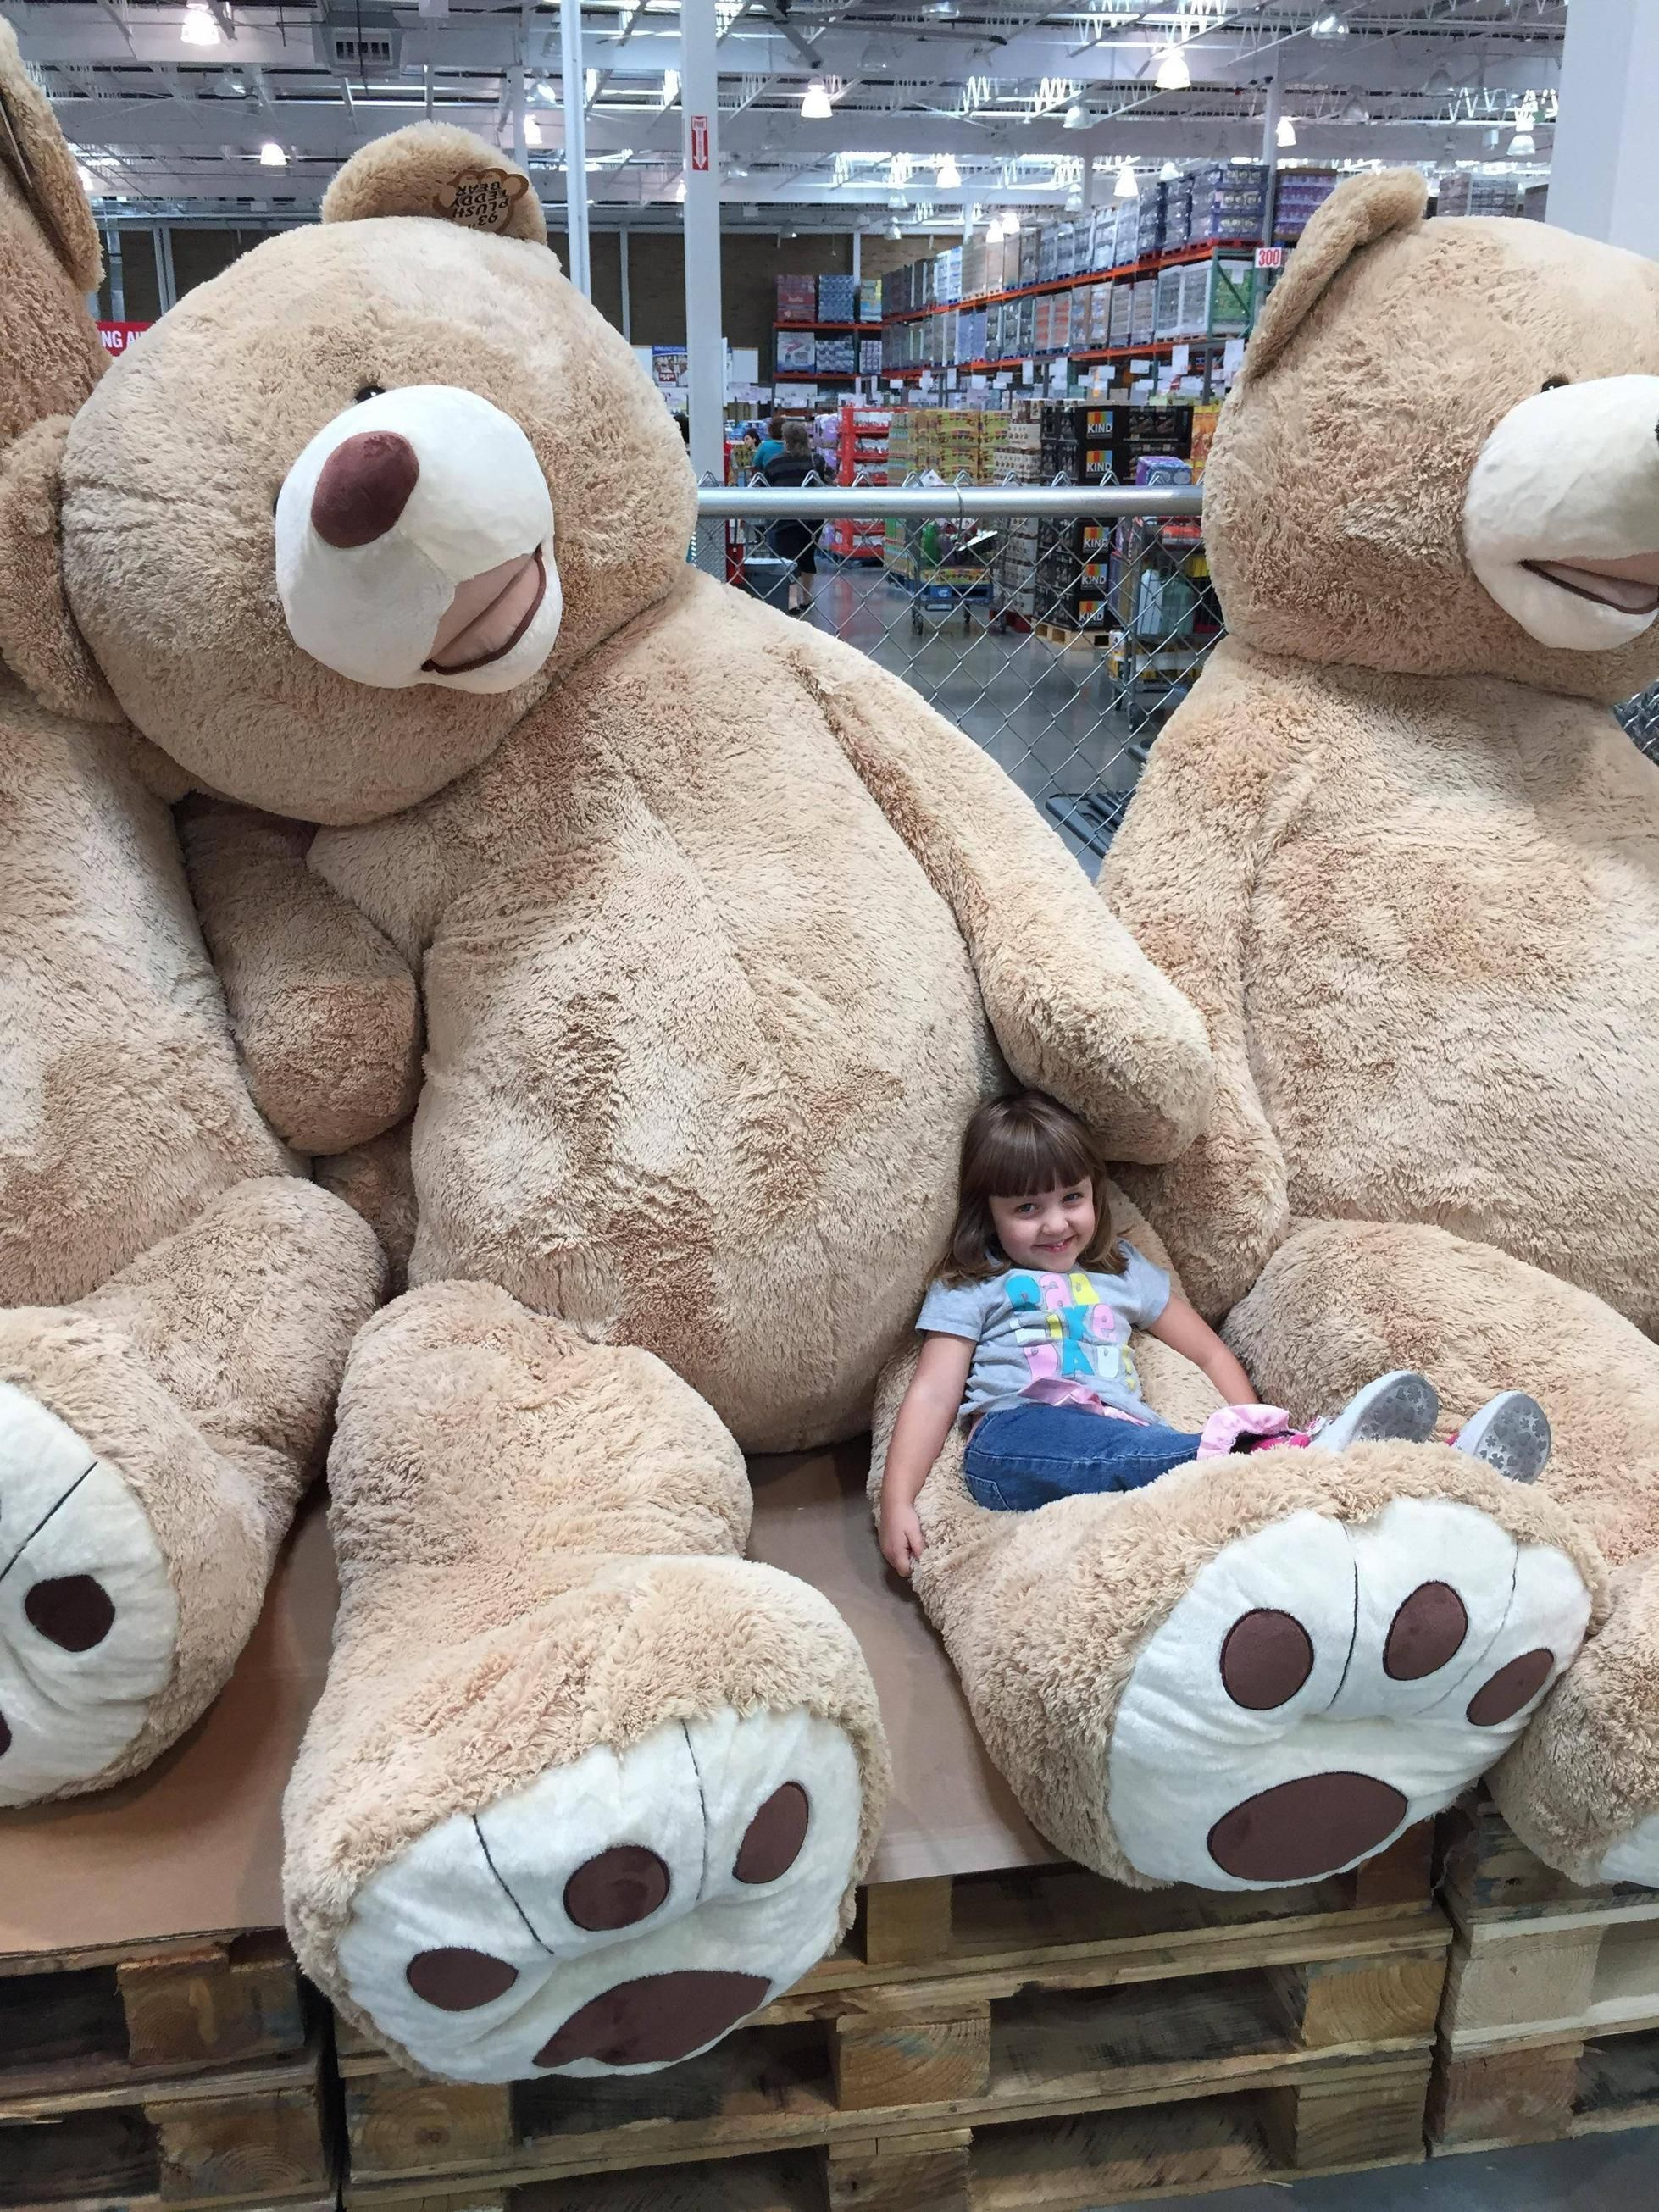 That's almost 8 FEET TALL!!! baby ideas Costco bear